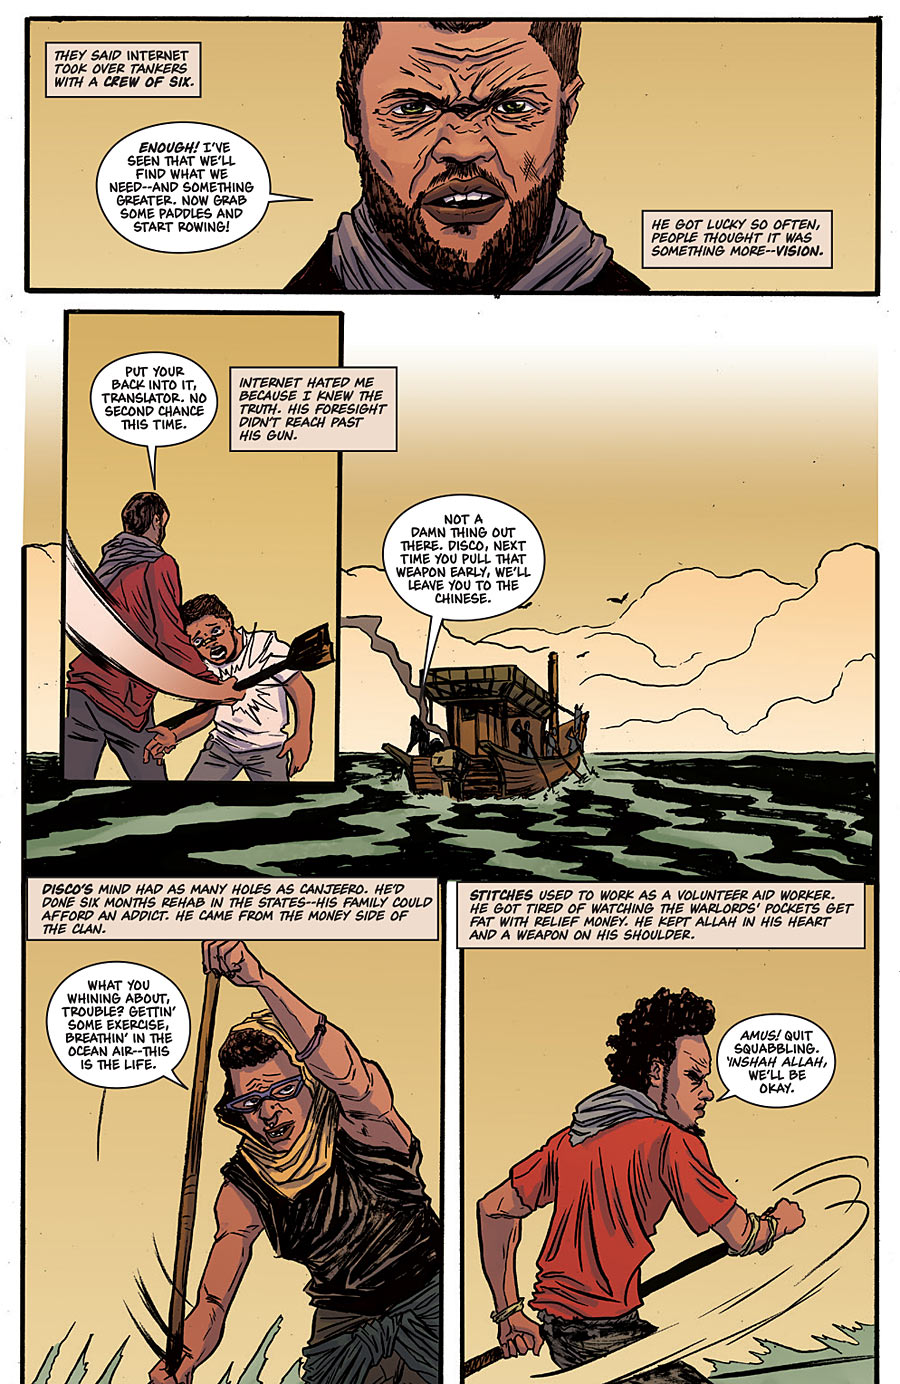 ARCHAIA-Plunder-01-PRESS-11-759a2.jpg